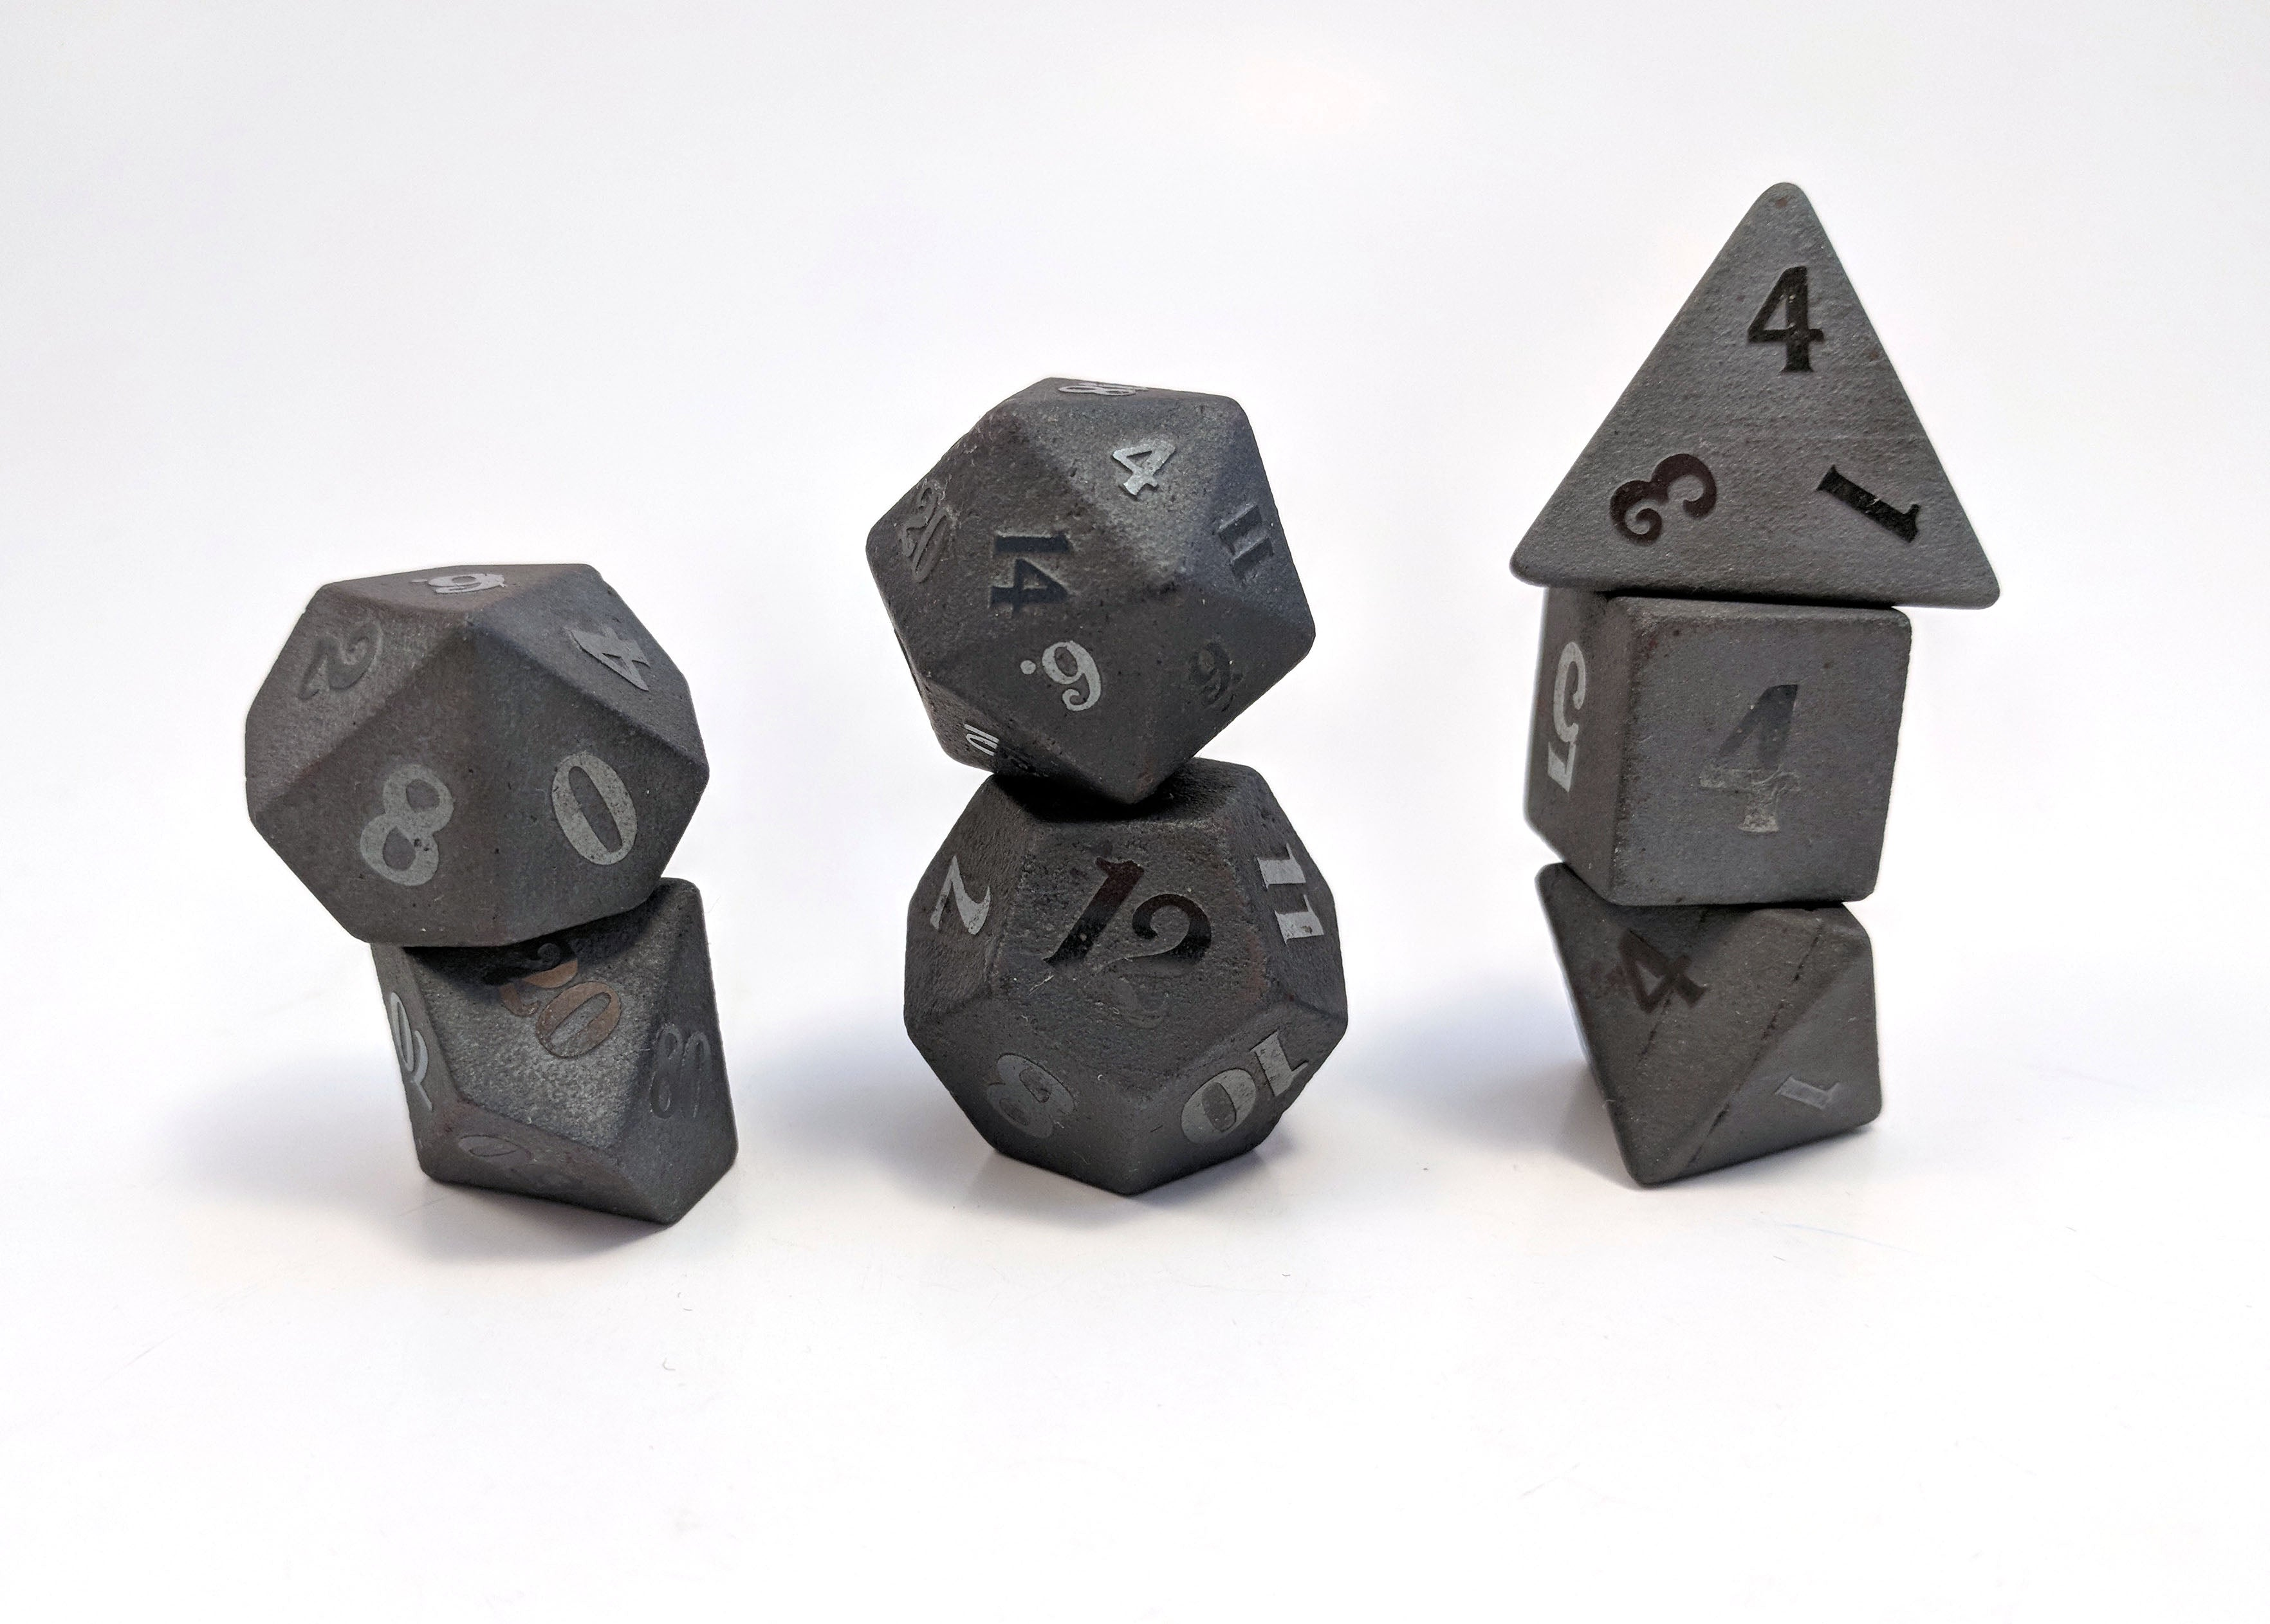 Raised Hematite Semi Precious Stone Dice Set